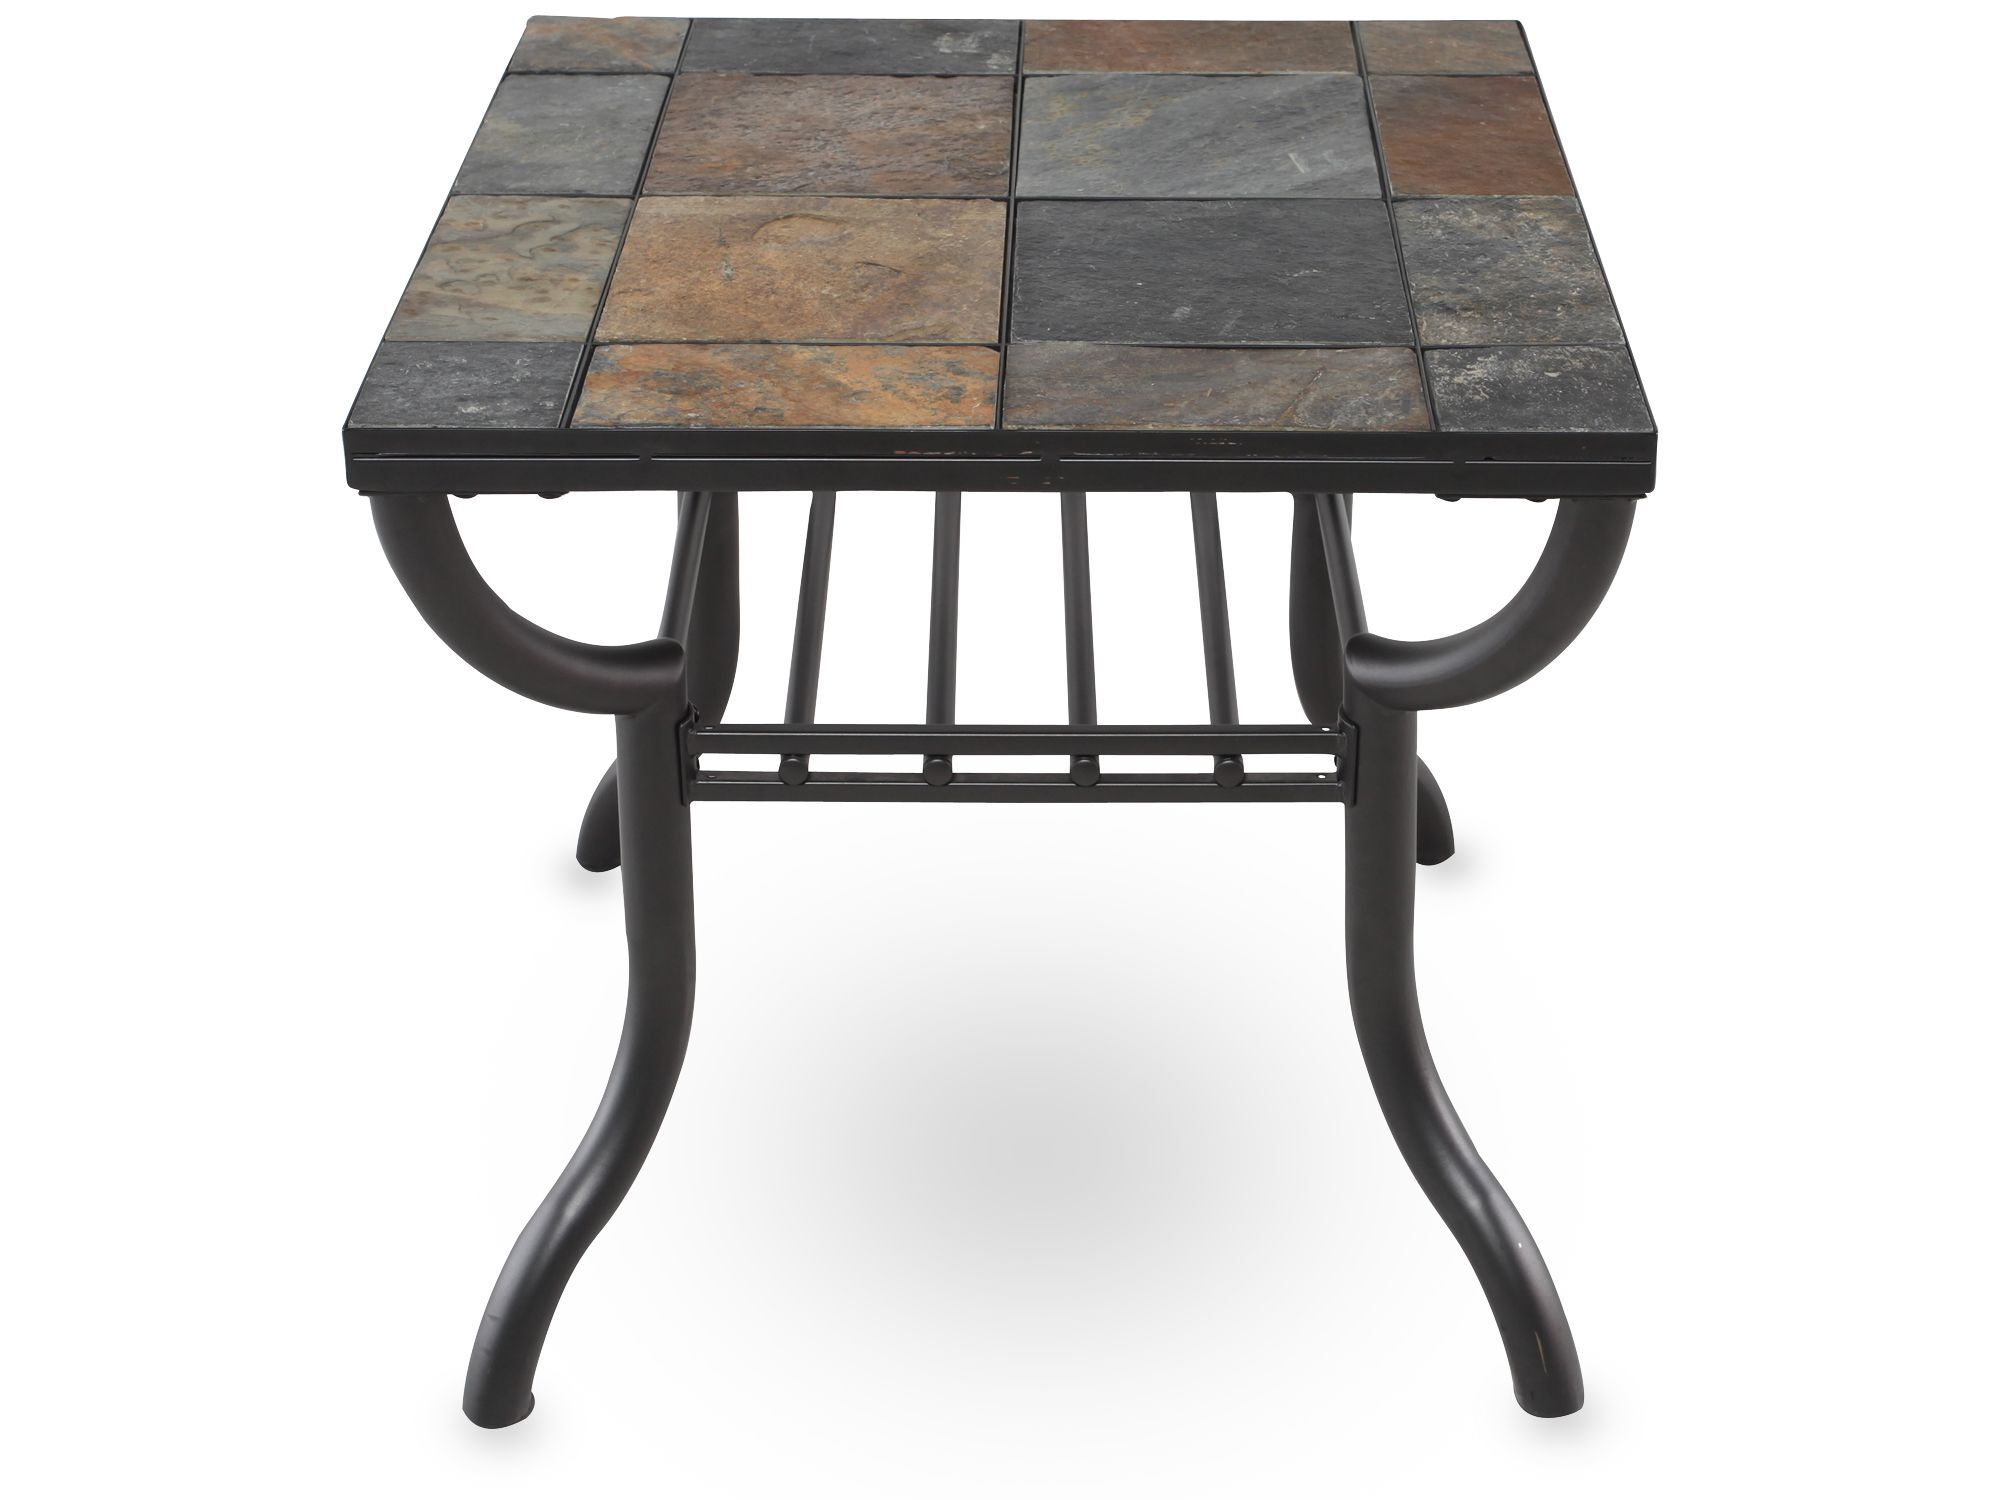 Images Square Slate Tiled Contemporary End Tableu0026nbsp;in Gunmetal Square  Slate Tiled Contemporary End Tableu0026nbsp;in Gunmetal